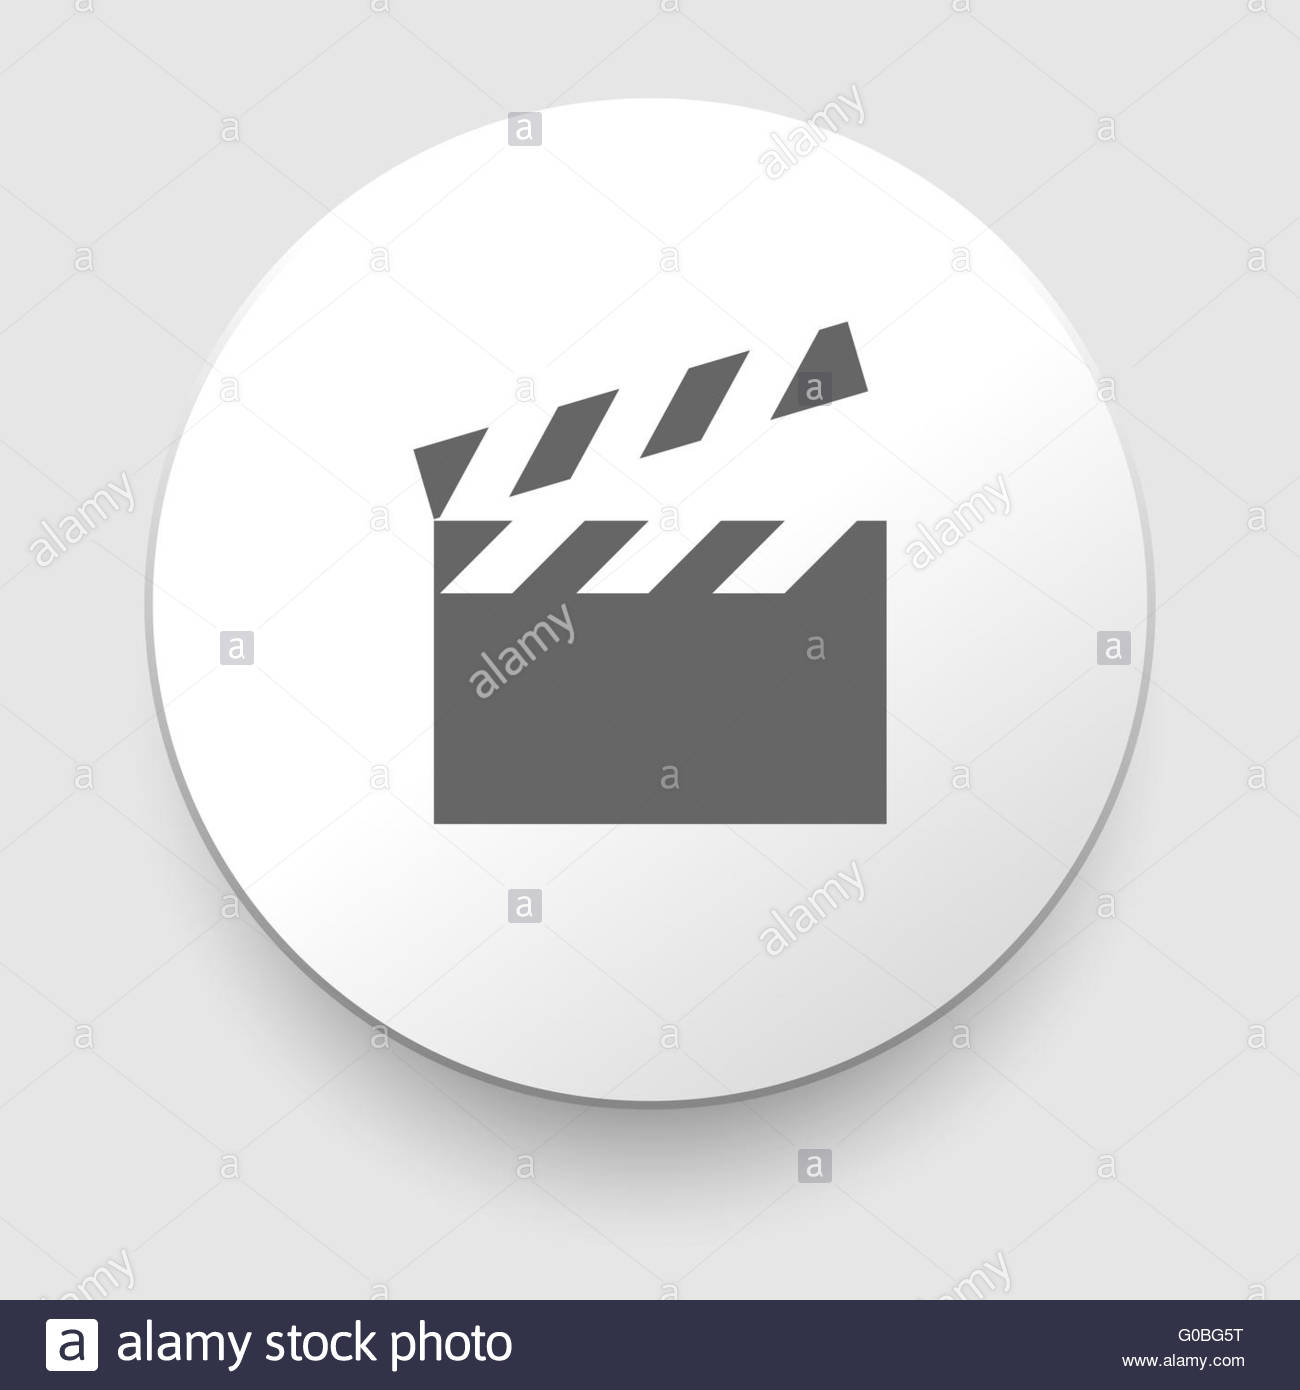 Clapper board isolated with clipping path included - Stock Image